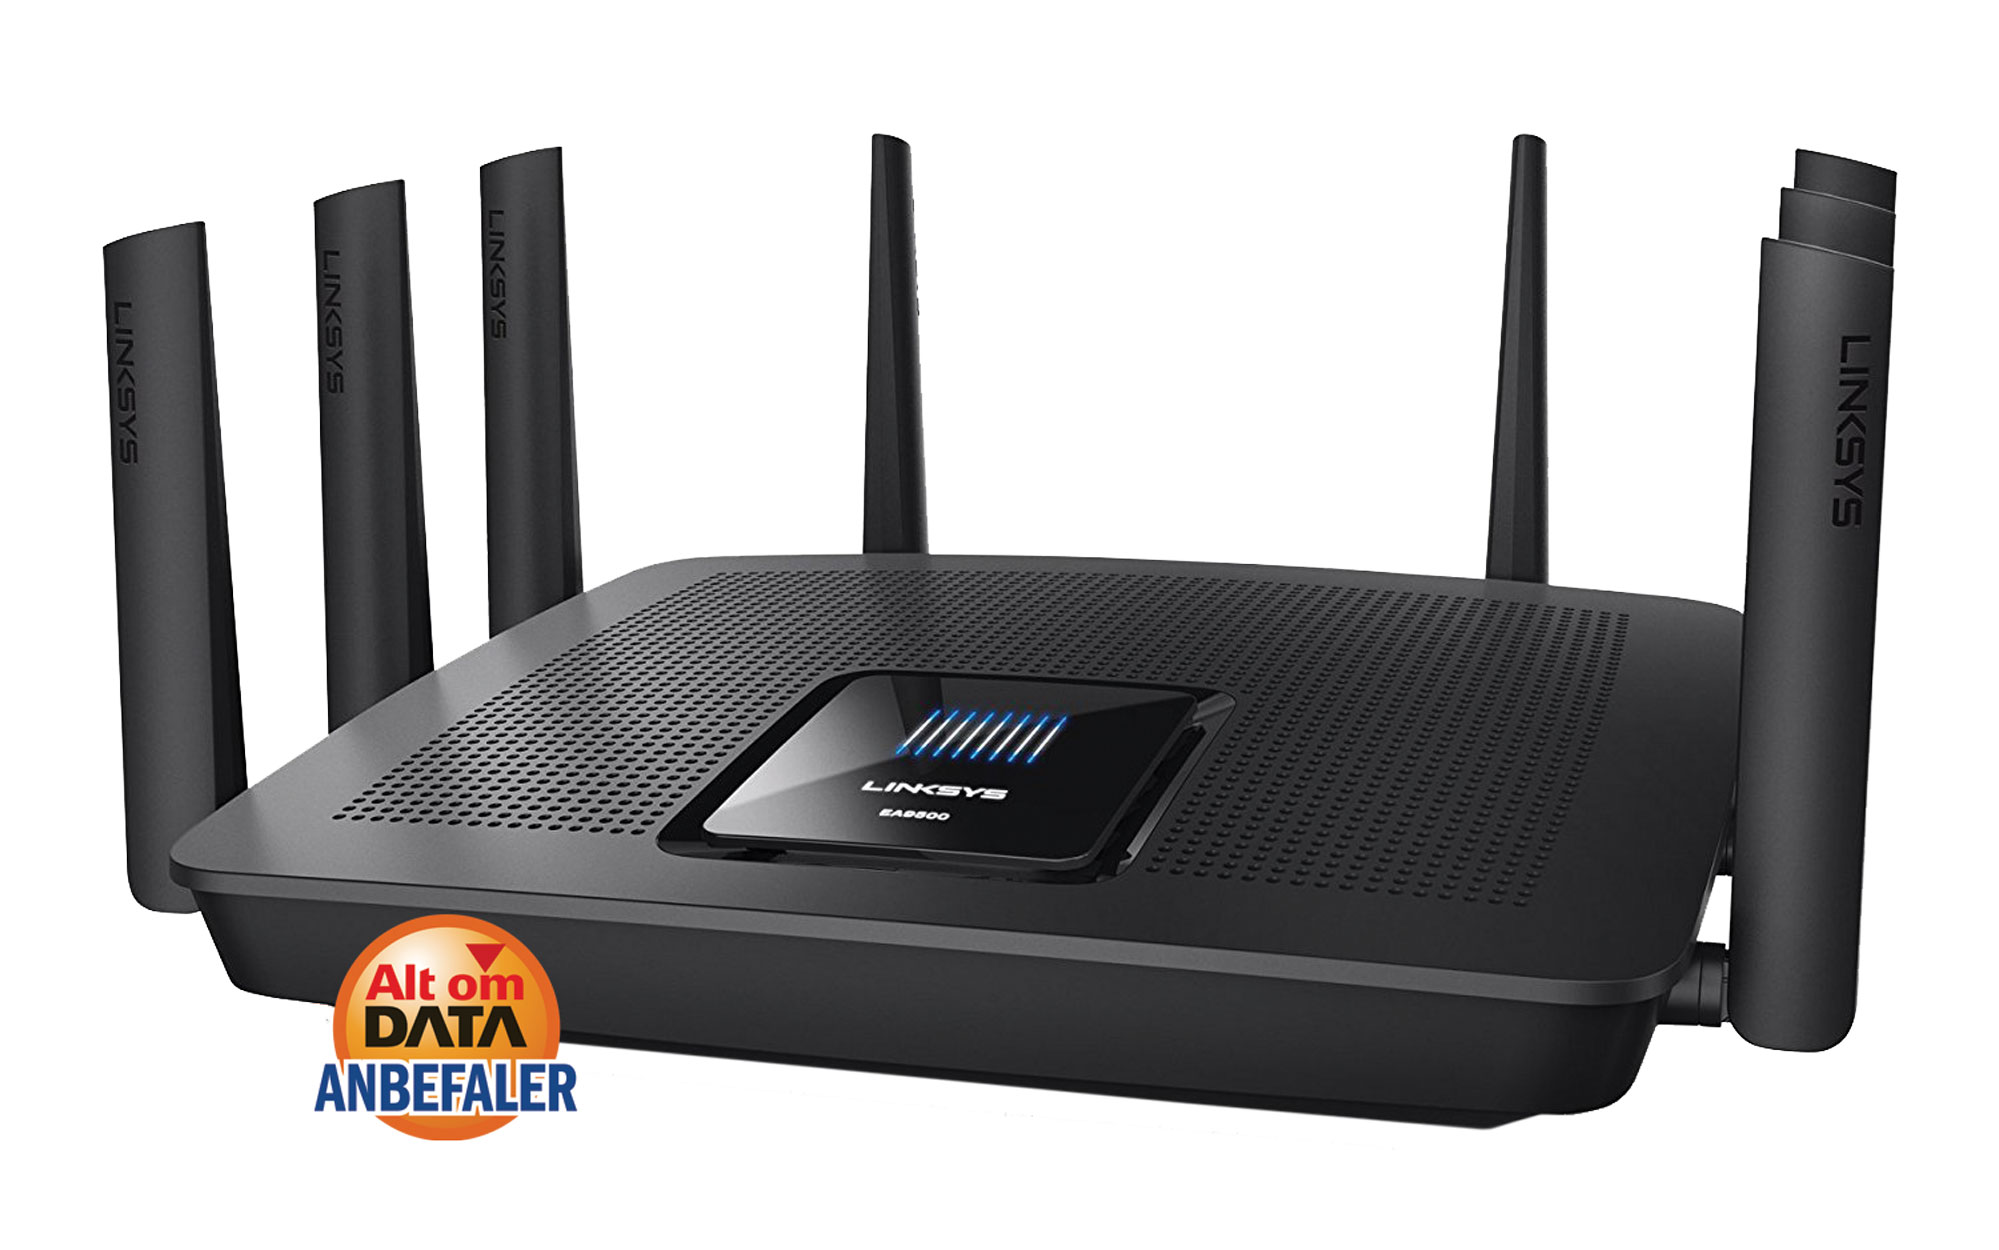 Linksys EA9500 Max-Stream AC5400 [TEST]: Router med rigelig kapacitet